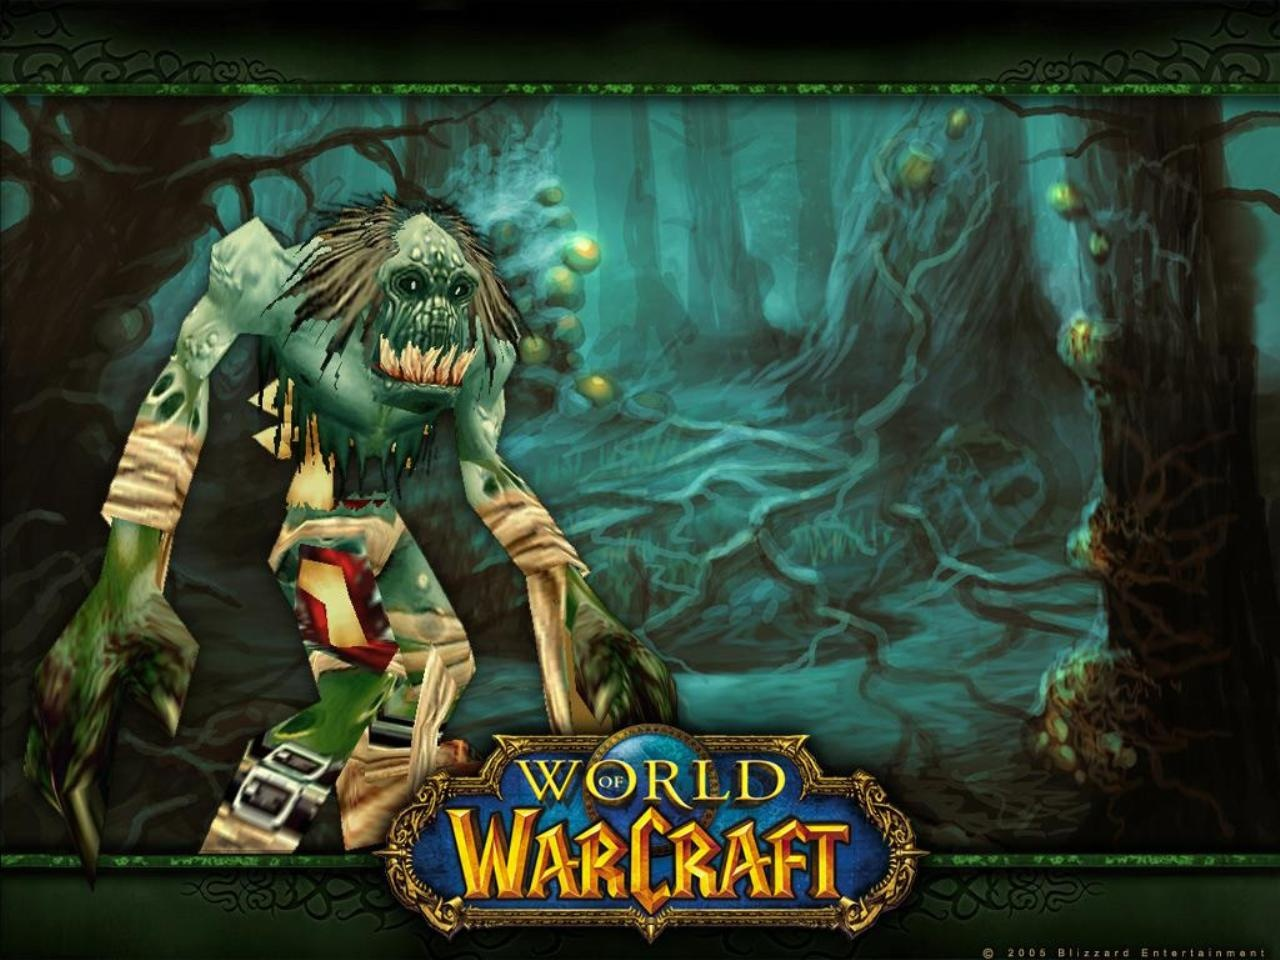 Word warcraftxxx erotic photo